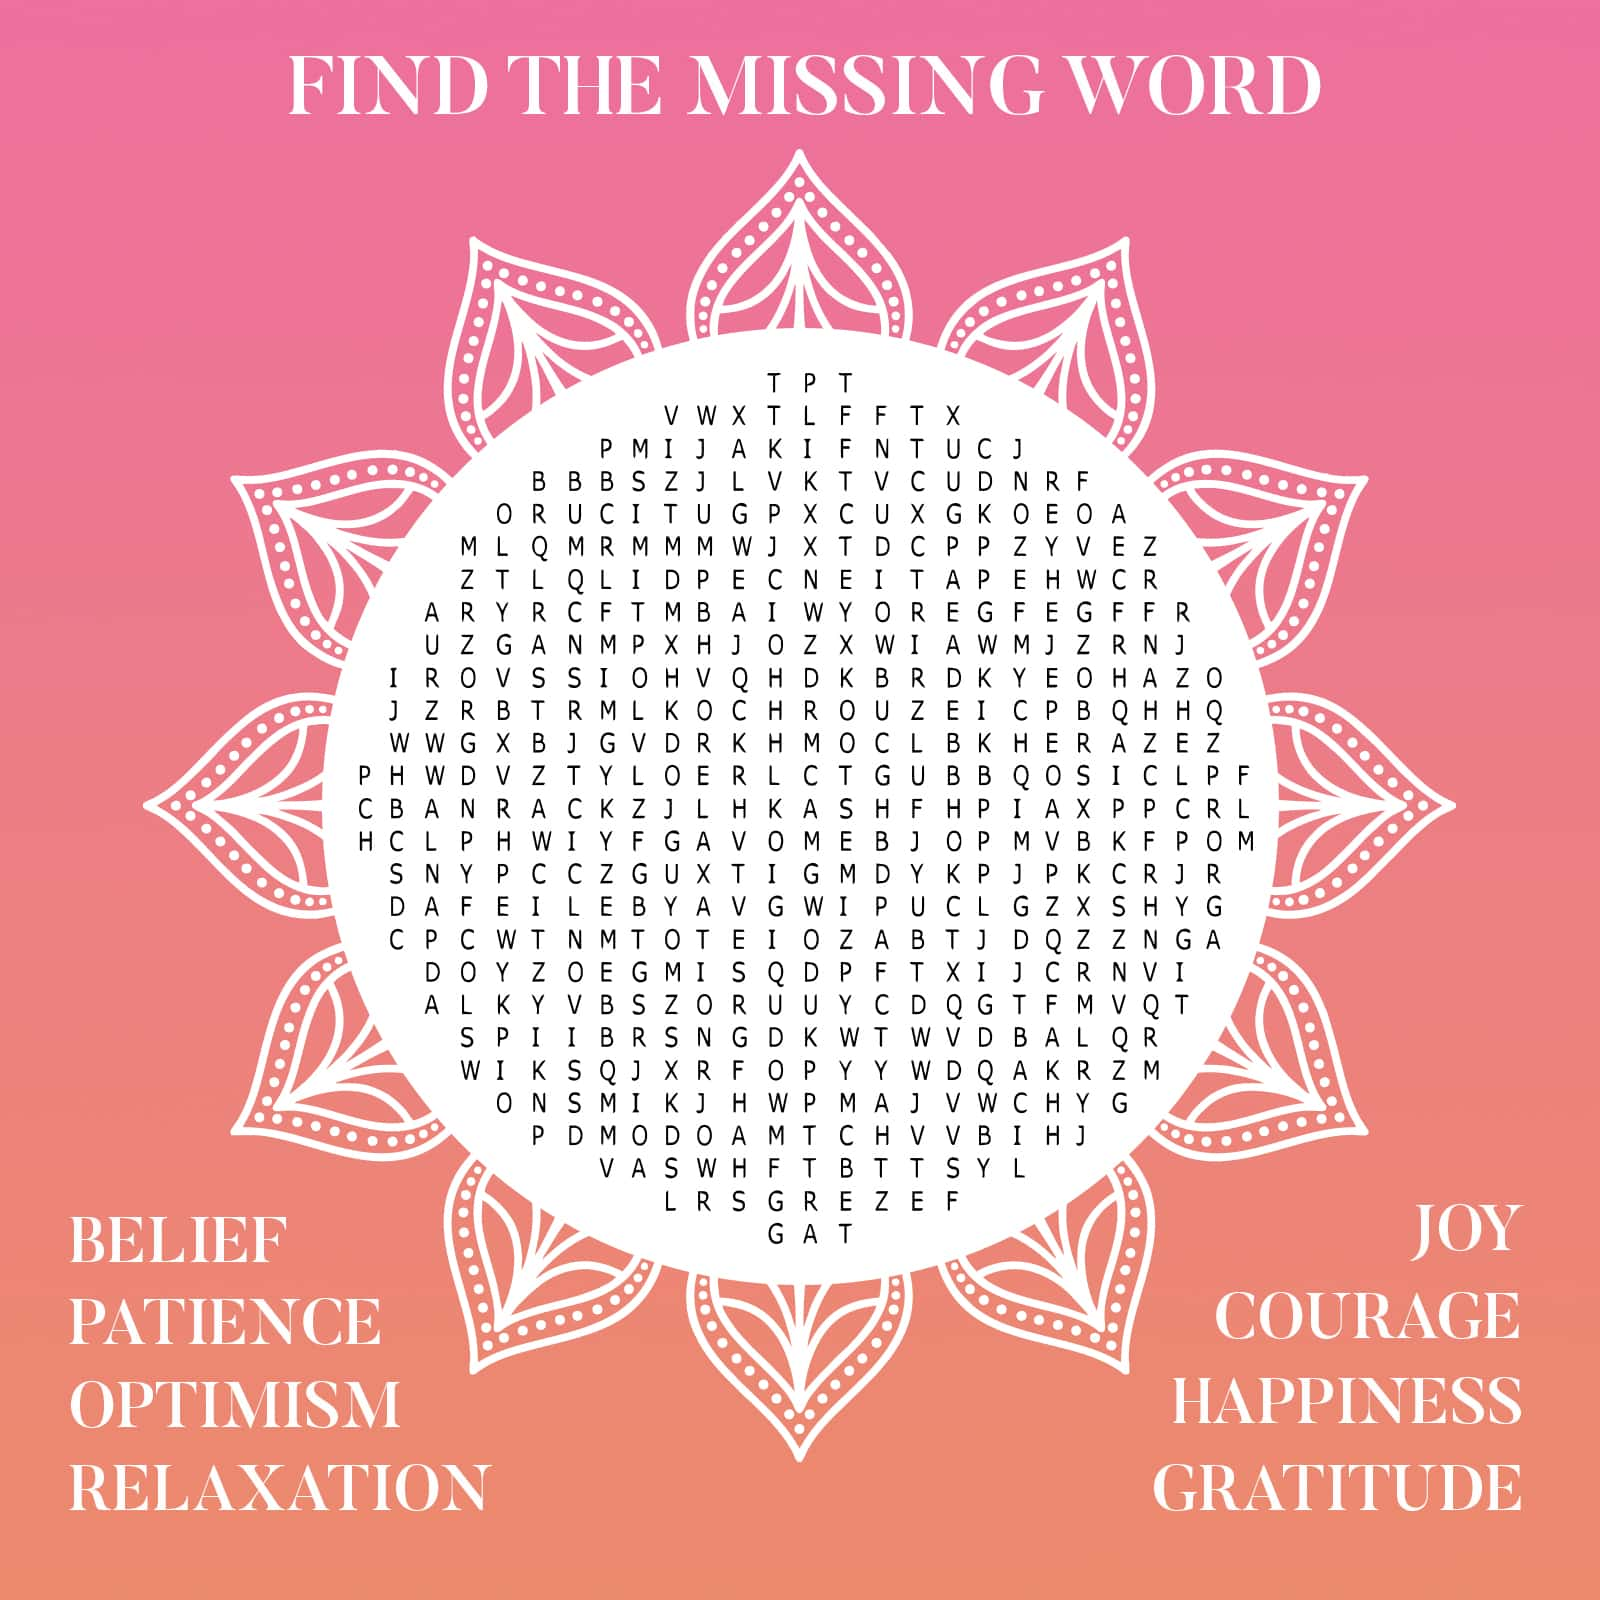 Sample Mindfulness Wordsearch